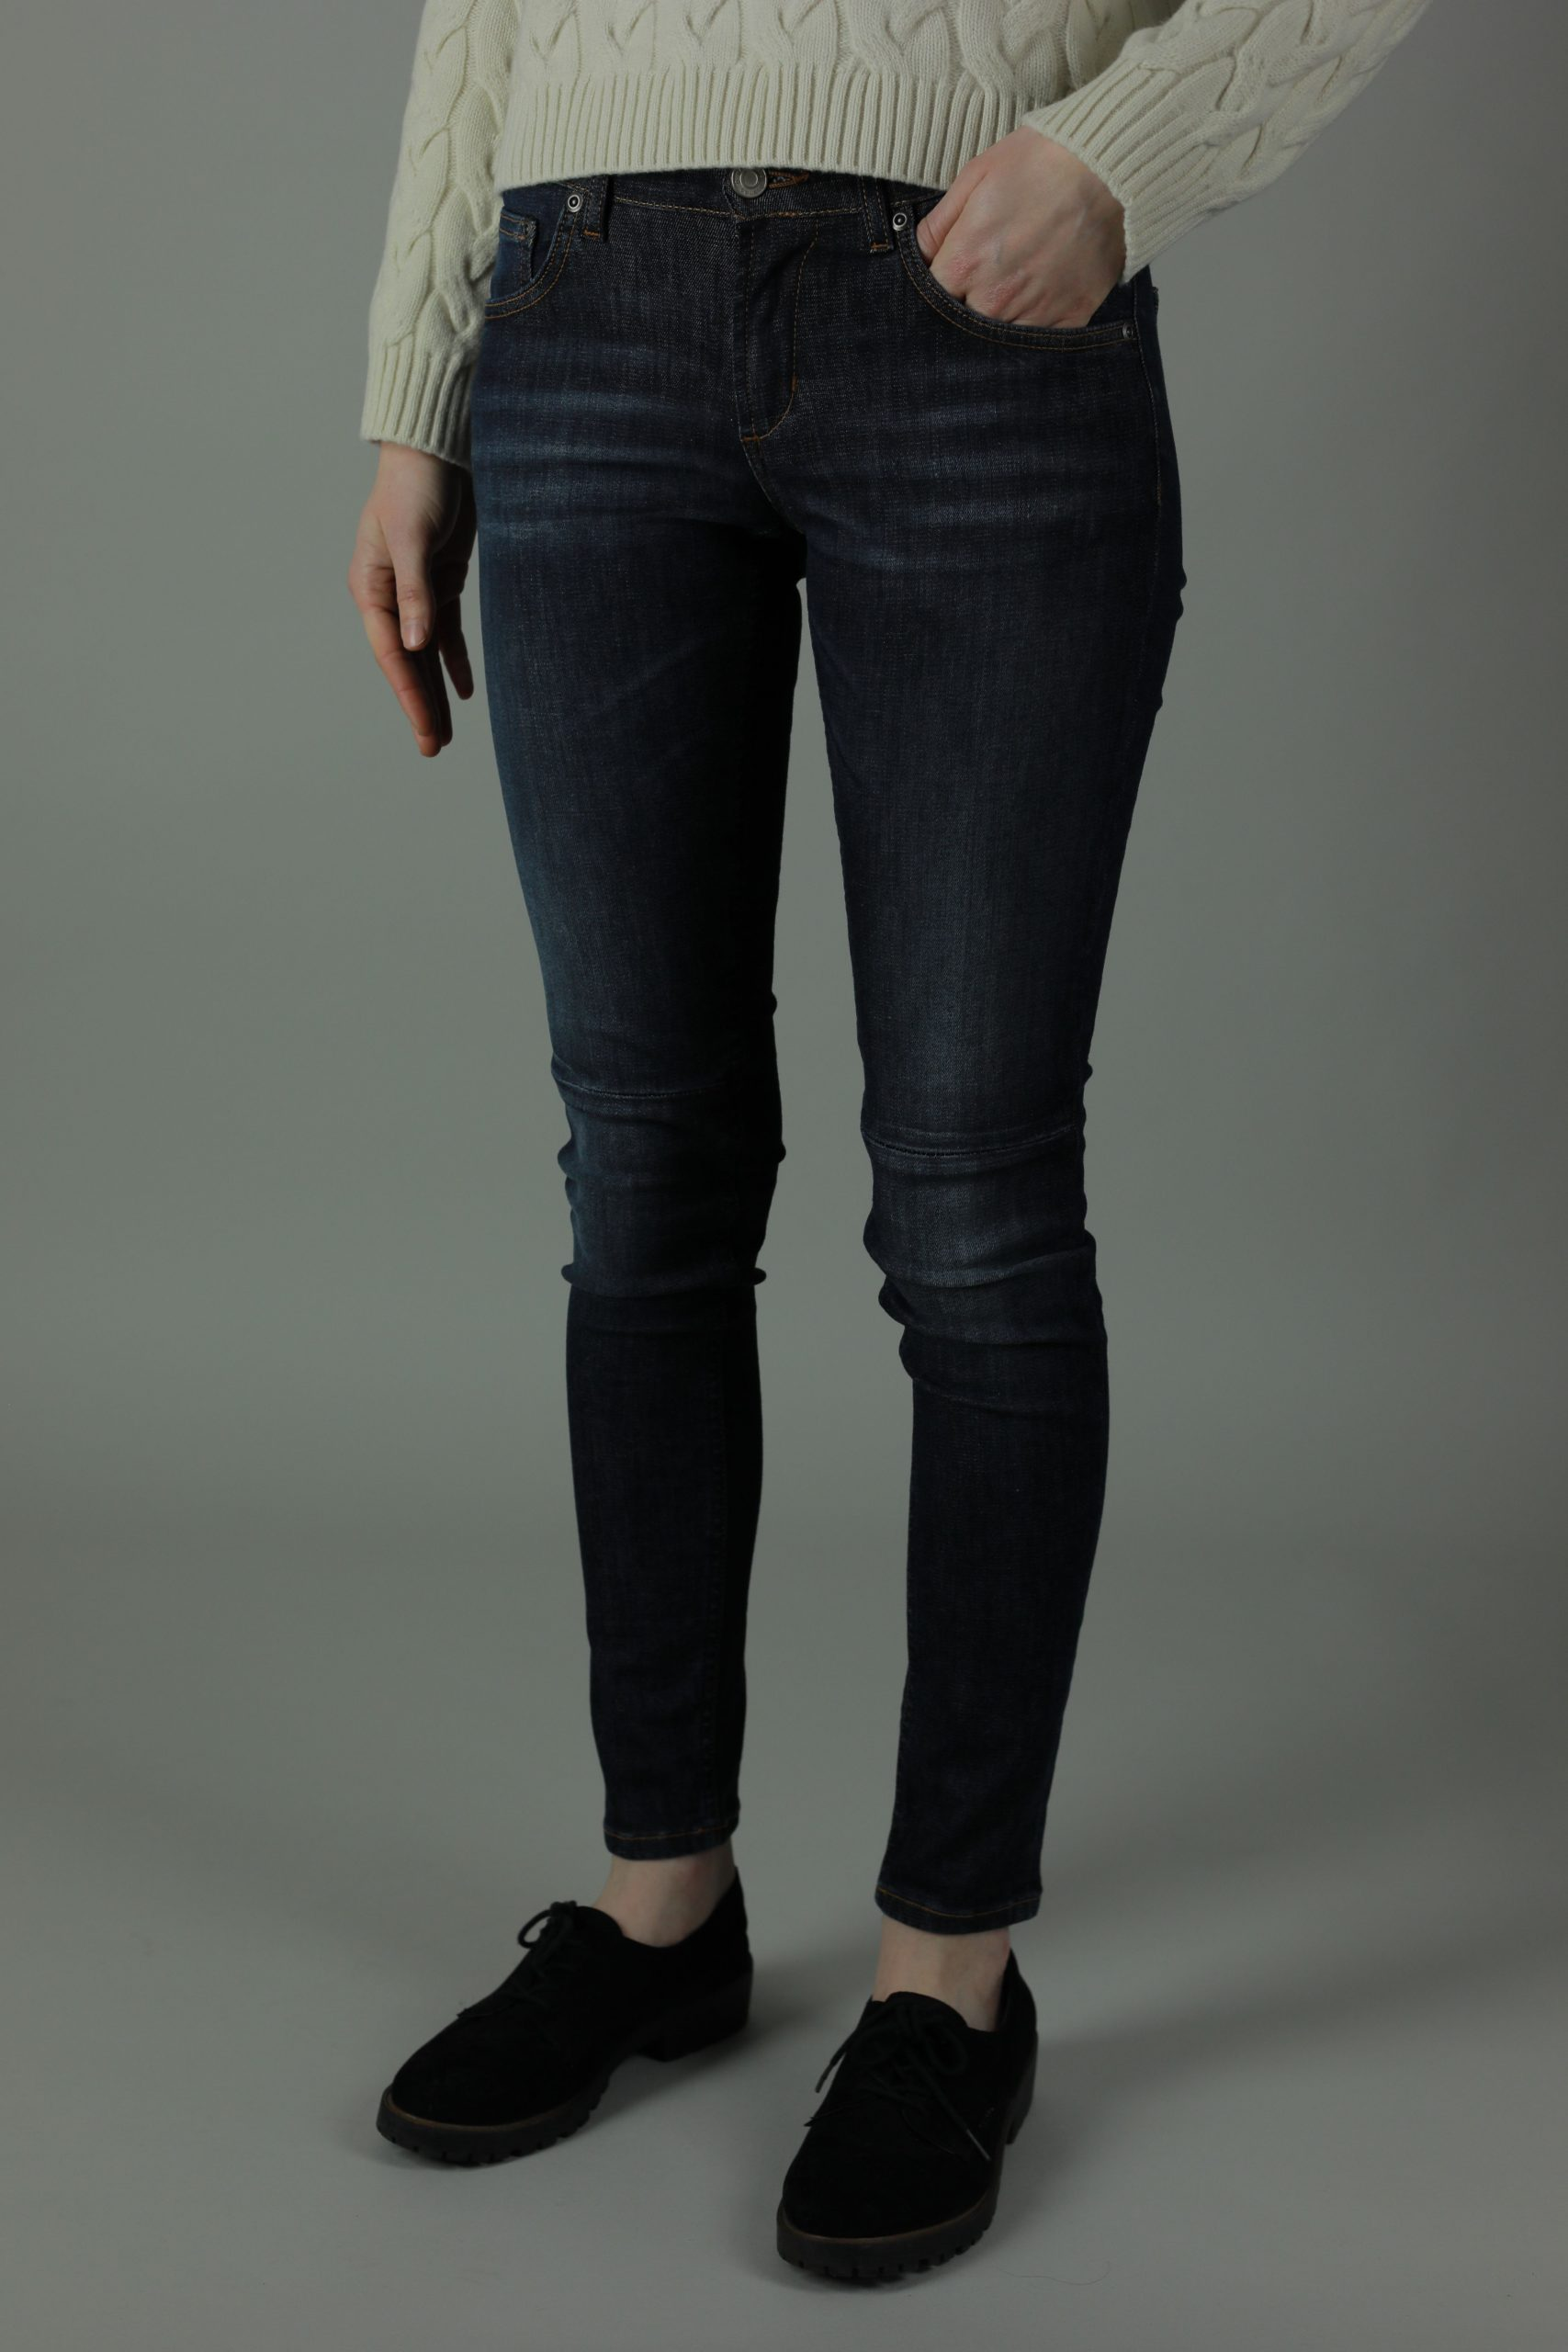 These 100% cotton mid waist Meghan Dublin jeans are durable, practical and stylish for year round wear. The Meghan range jeans feel smooth against your skin but firm to hold shape for a comfortable and flattering fit.